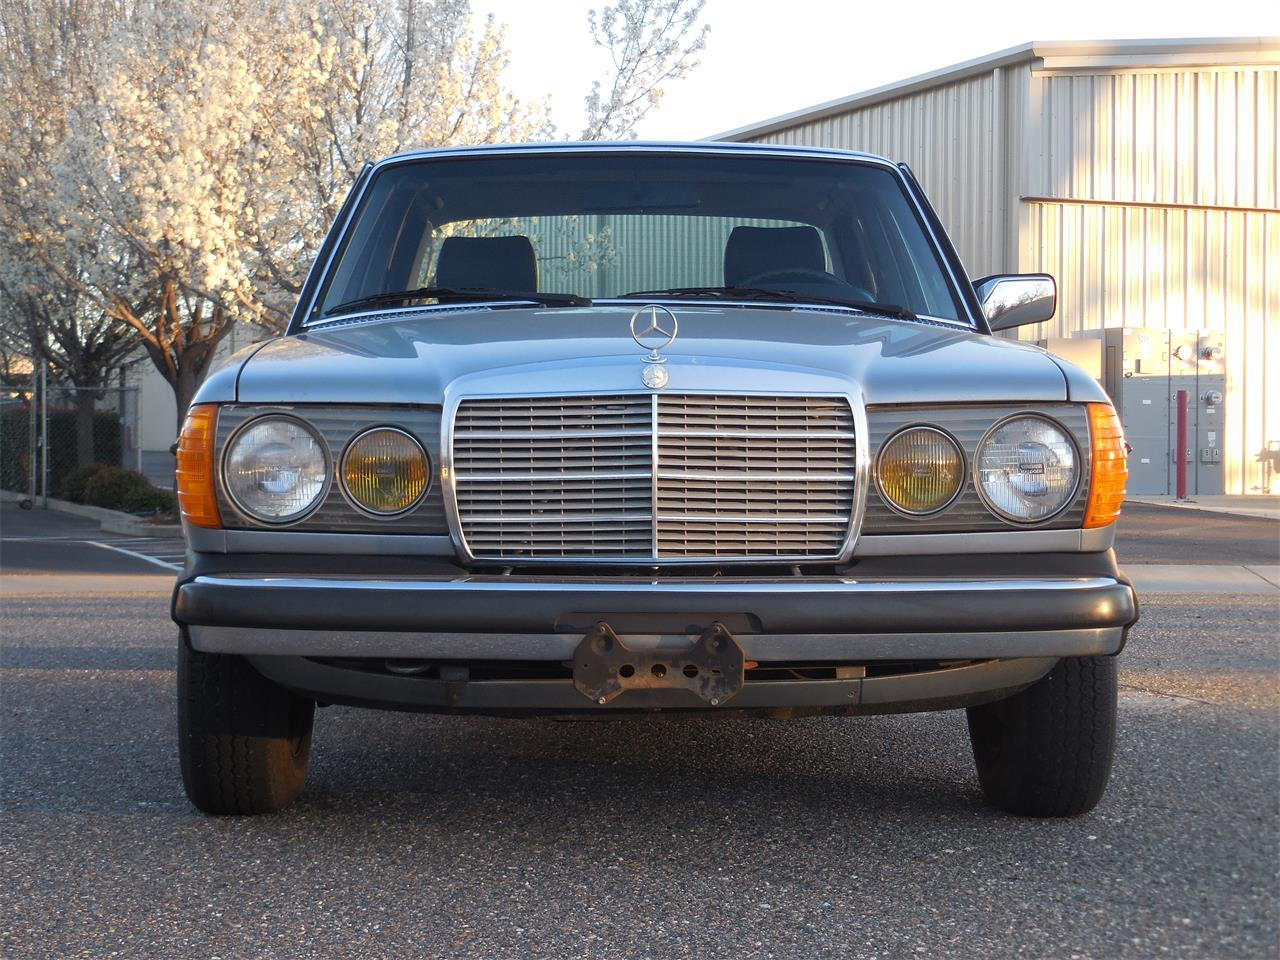 1982 Mercedes-Benz 300D for sale in Anderson, CA – photo 4